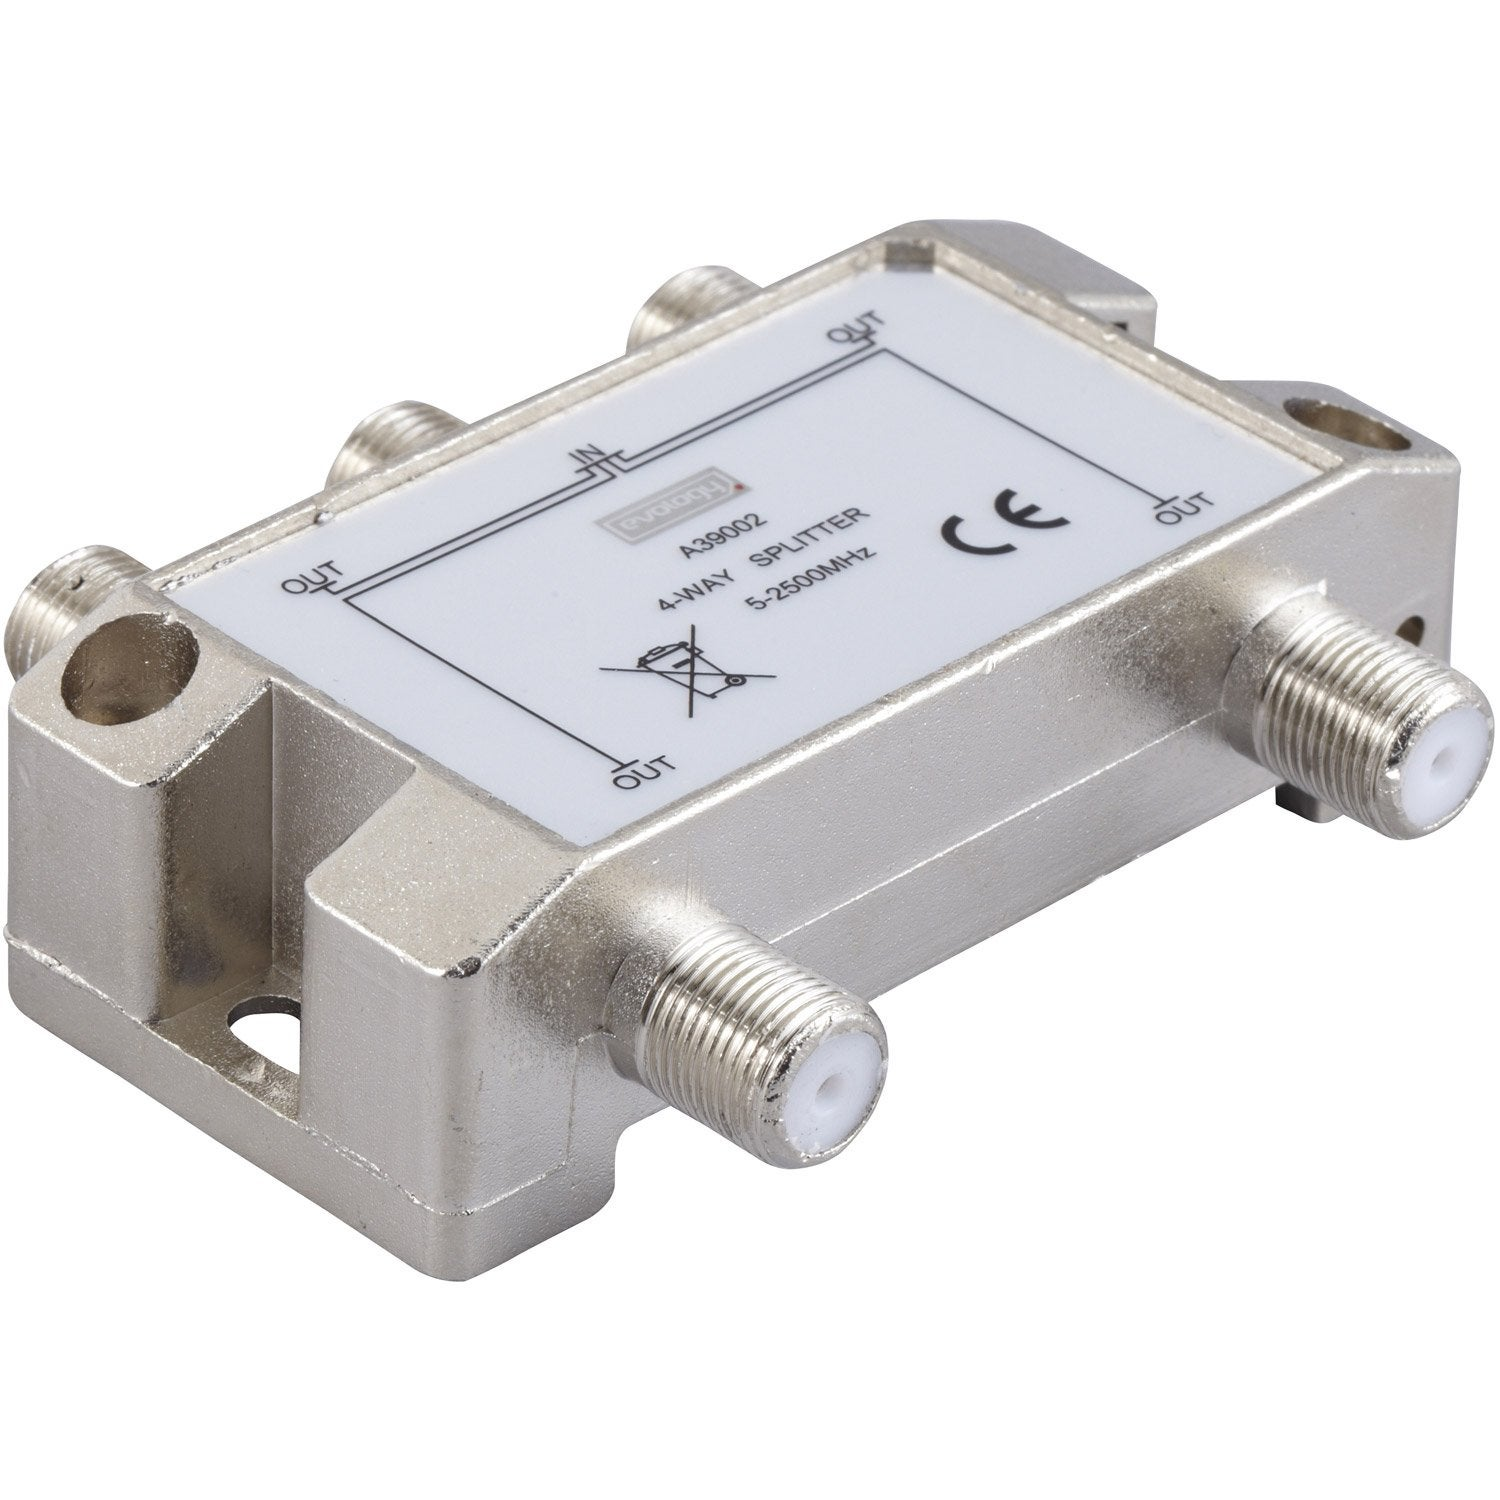 Pointeur satellite evology leroy merlin - Connect leroymerlin fr ...